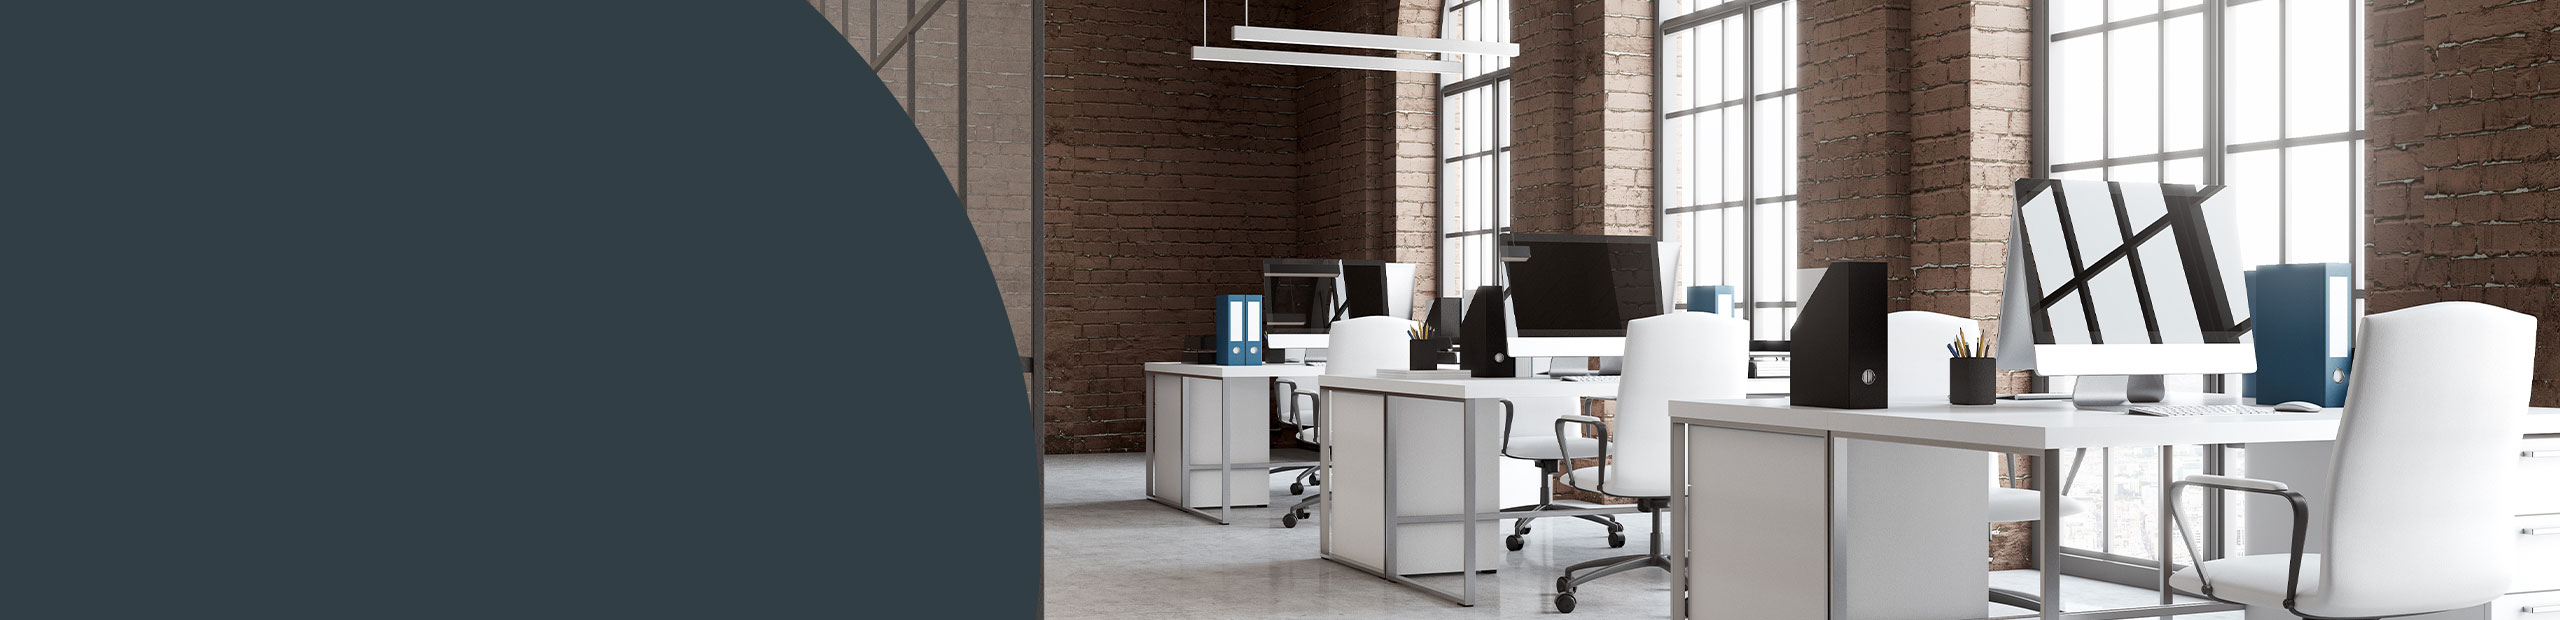 Office Cleaning West Sussex